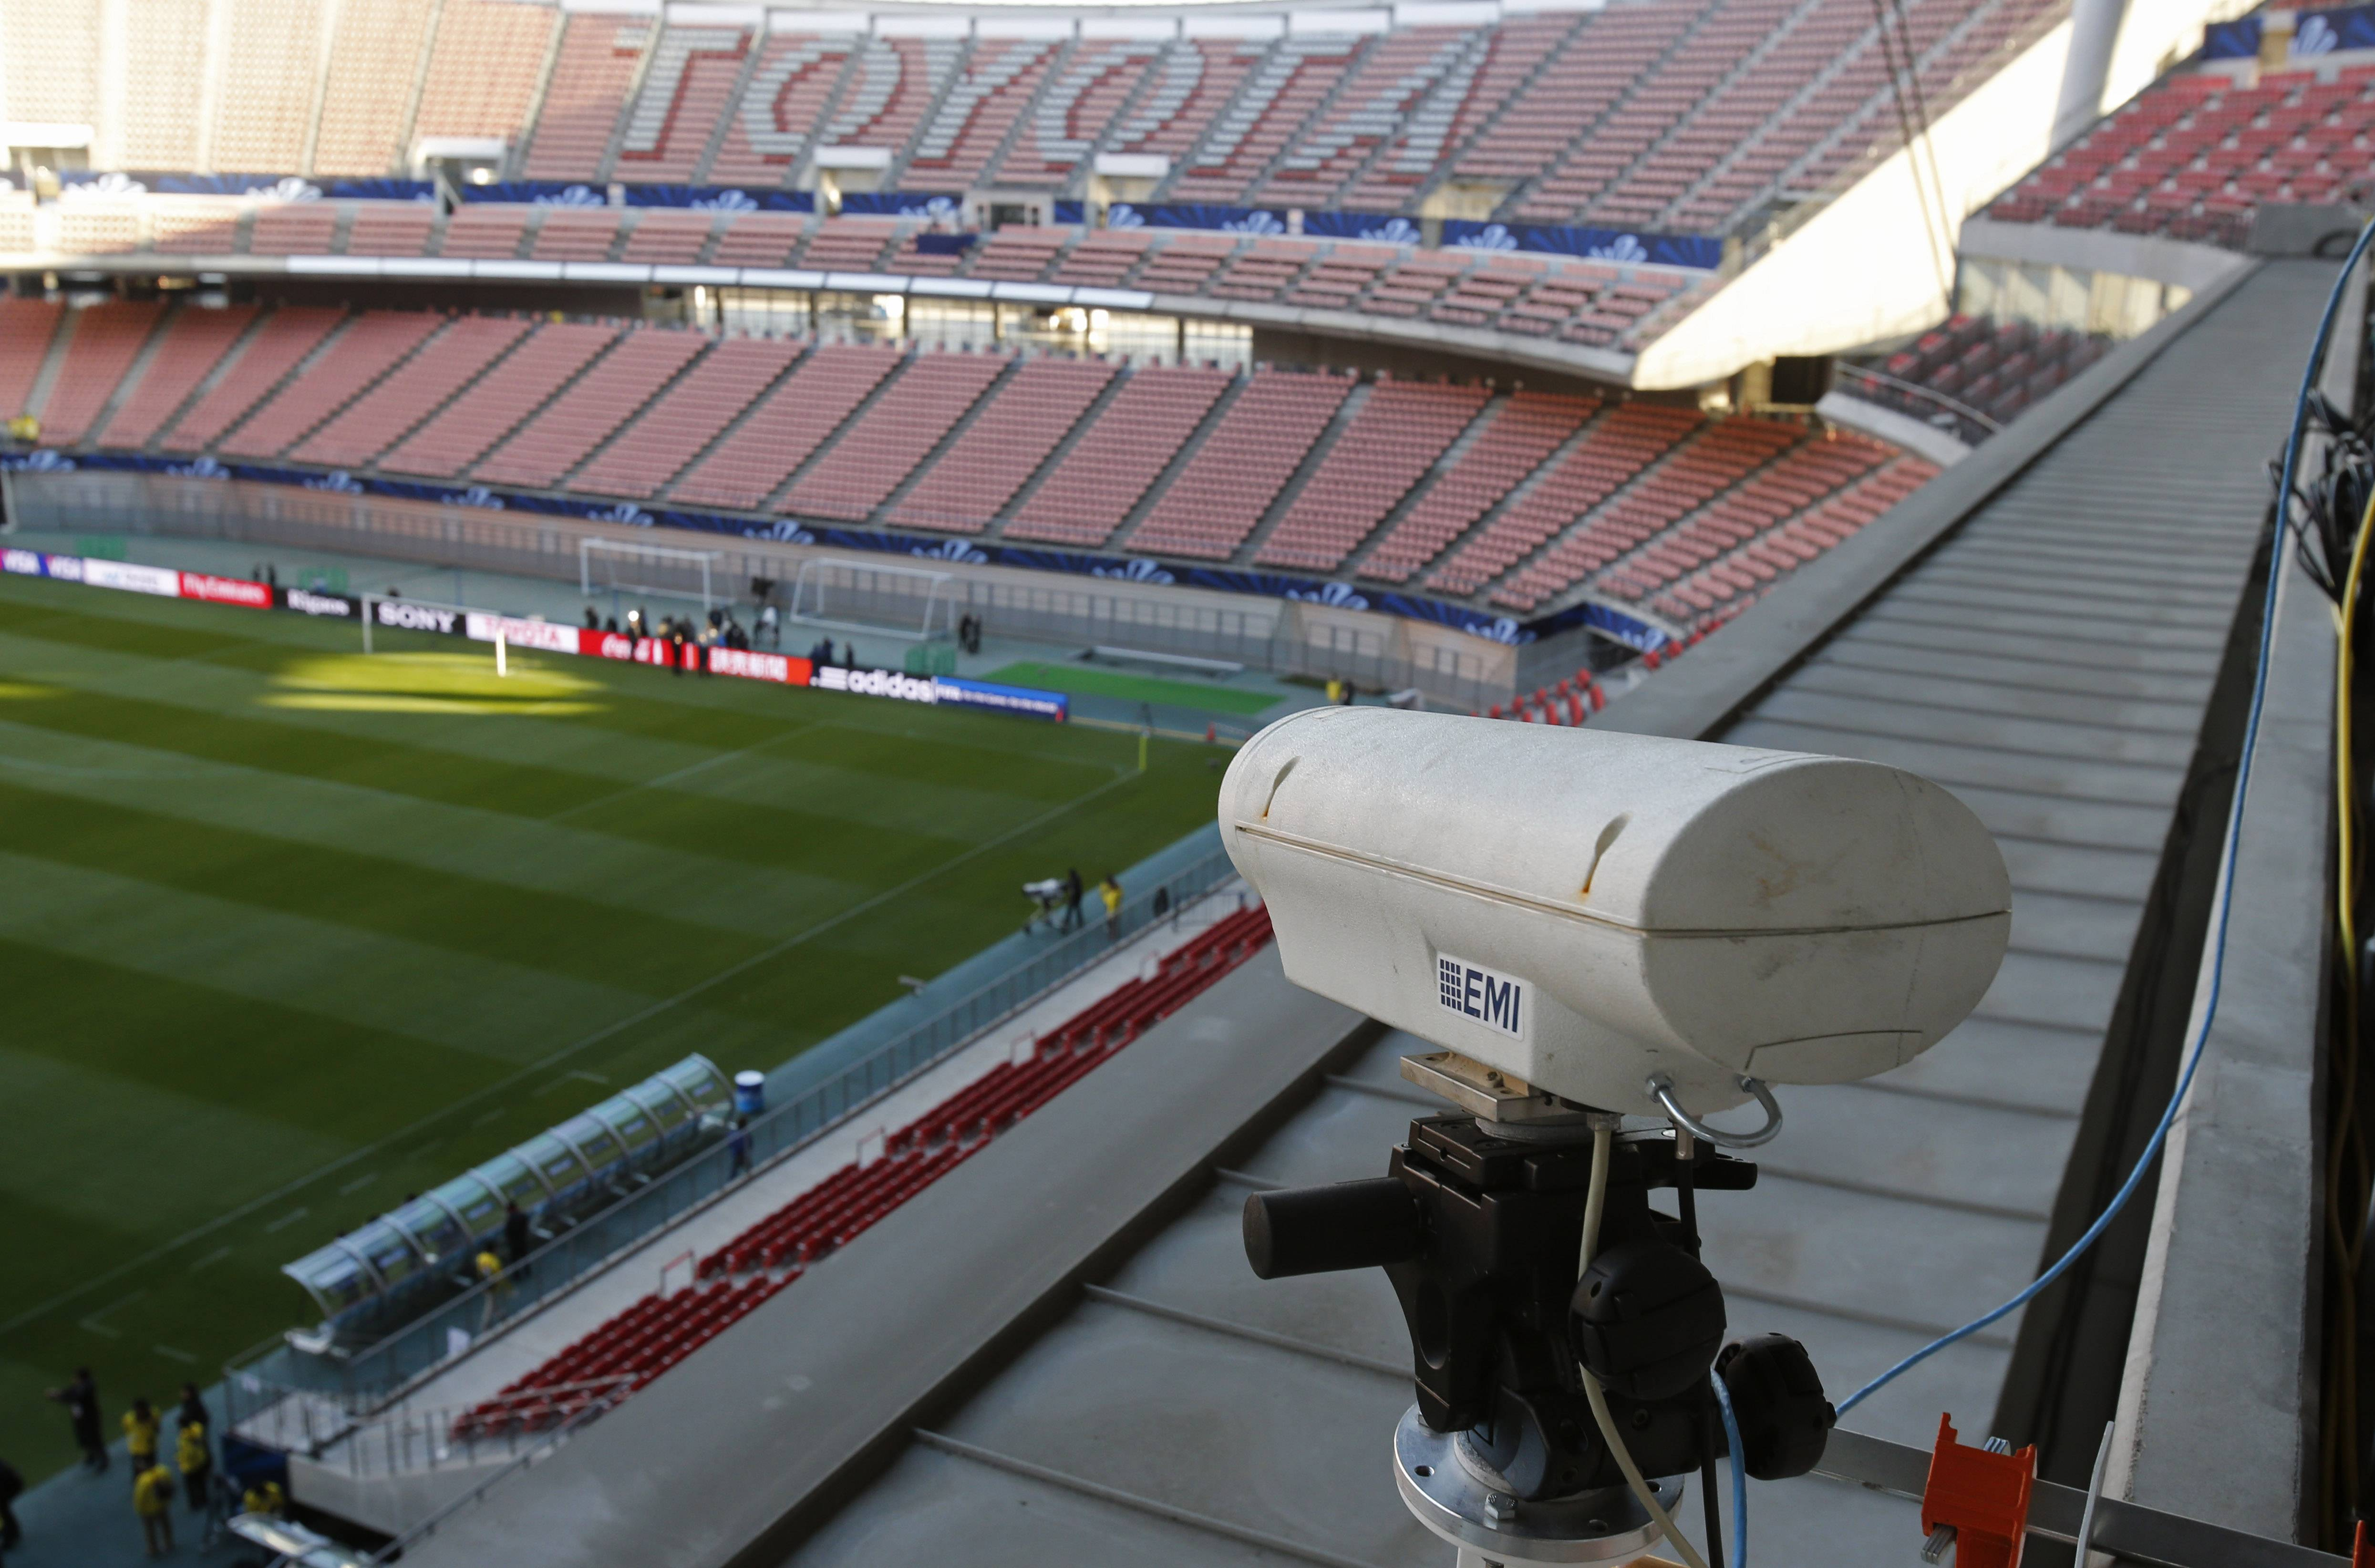 In this Saturday, Dec. 8, 2012, file photo, a Hawk-Eye camera is set up at Toyota stadium in Toyota. For the first time at a World Cup, technology will be used to determine whether a ball crosses the goal line during matches at the upcoming tournament in Brazil. With vanishing spray also being used to prevent encroachment by defenders making up a wall during free kicks, officials at the highest level of the world's most popular sport are finally getting some assistance.